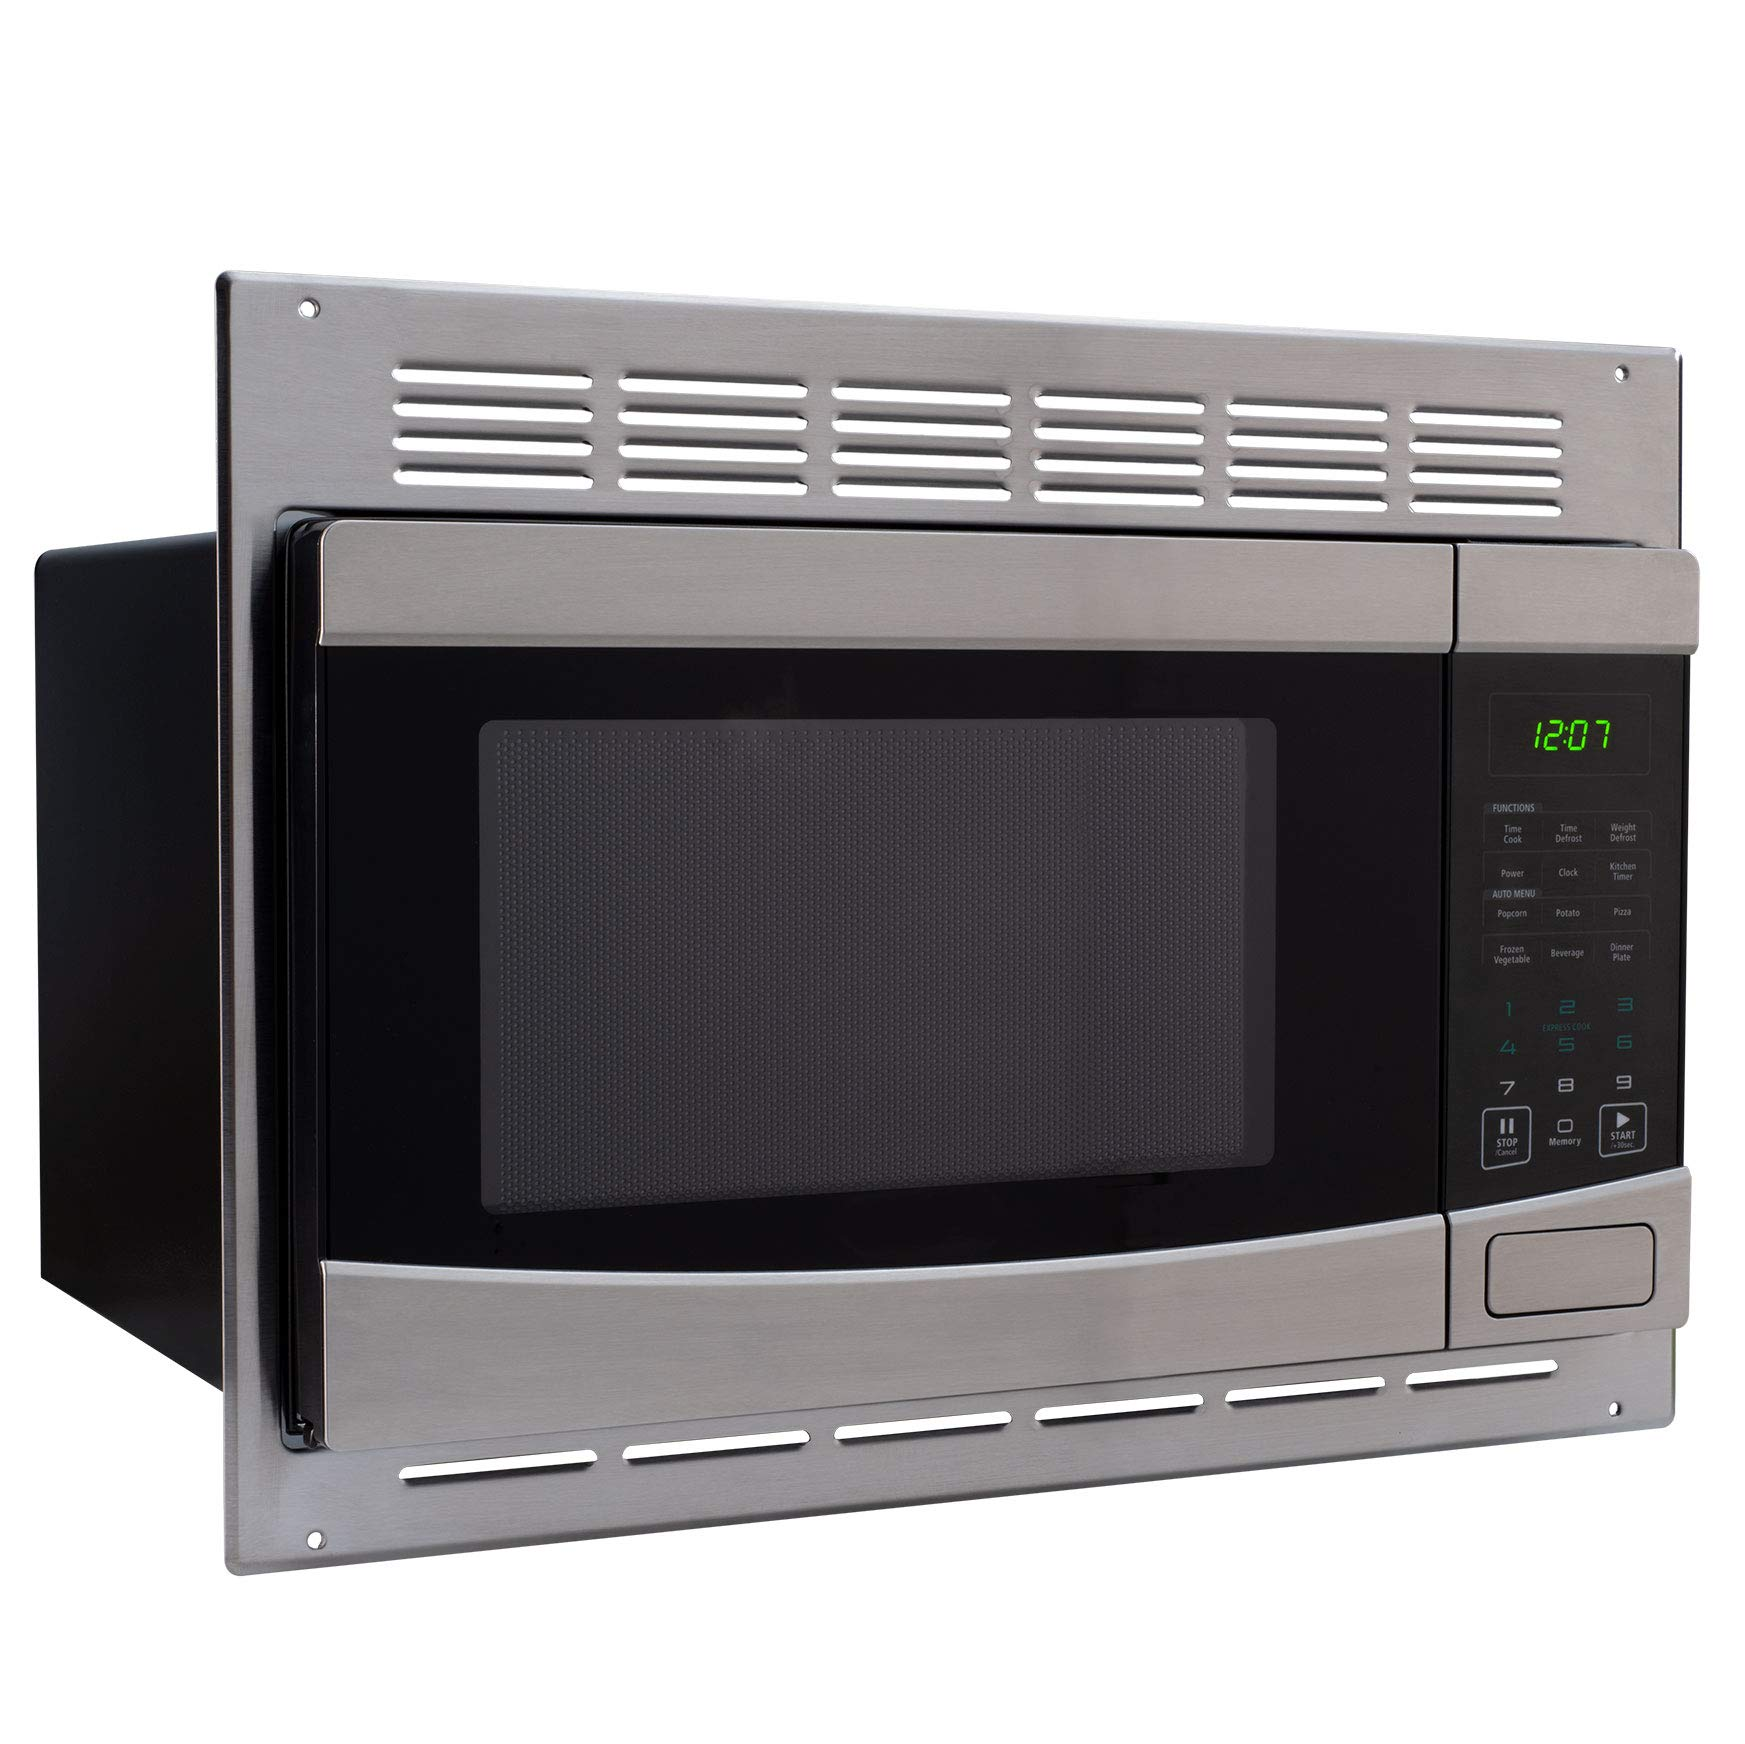 RecPro RV Stainless-Steel Microwave 1.0 cu ft. With Trim Package EM925AQR-S by RecPro (Image #1)